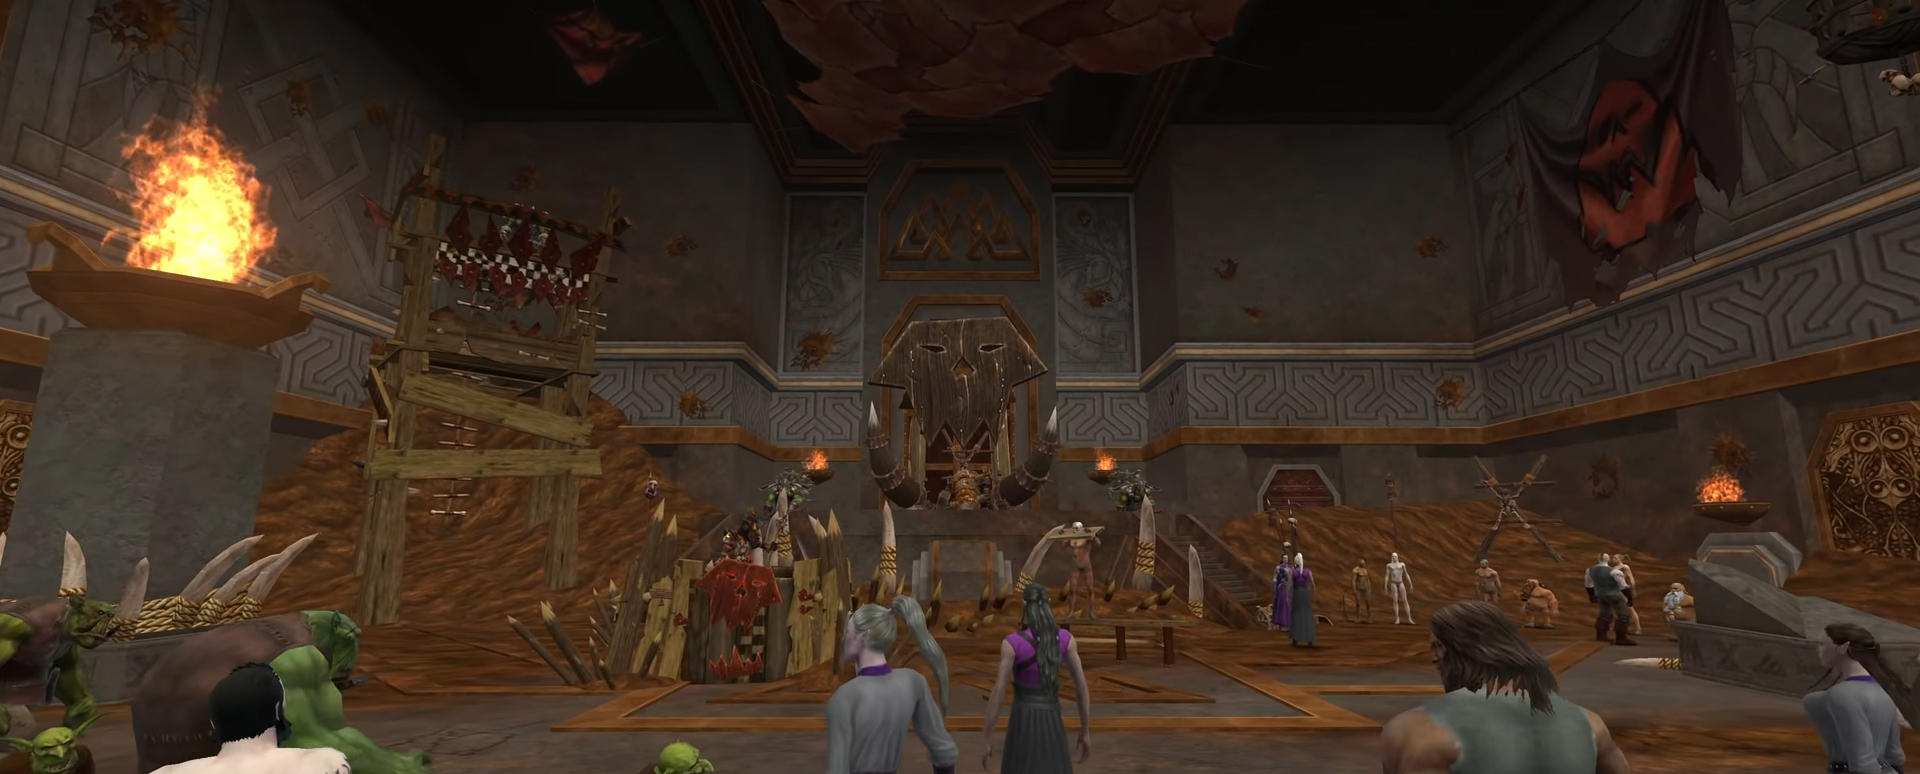 Warhammer Online: Return of Reckoning Adds Two Capital Cities That Mythic Left Out at Release